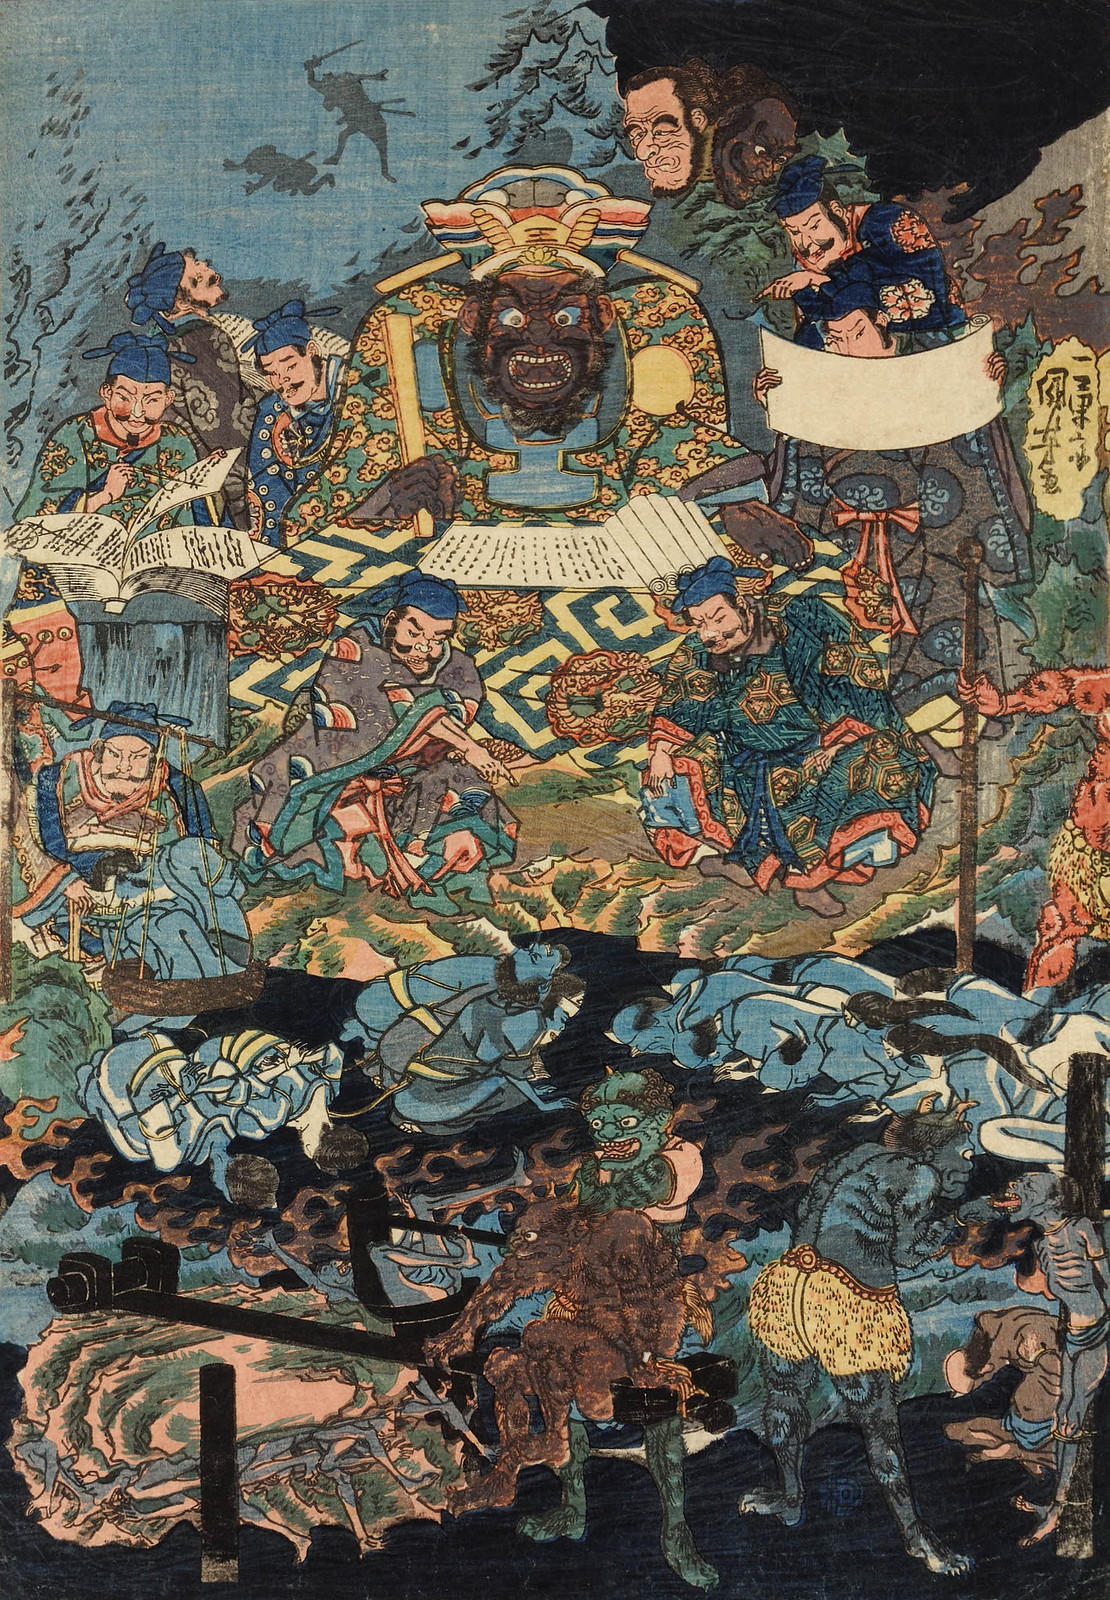 Utagawa Kuniyoshi - Various ghosts, devil-like figures, and the King of Hell lording over his domain, Edo Period (right panel)